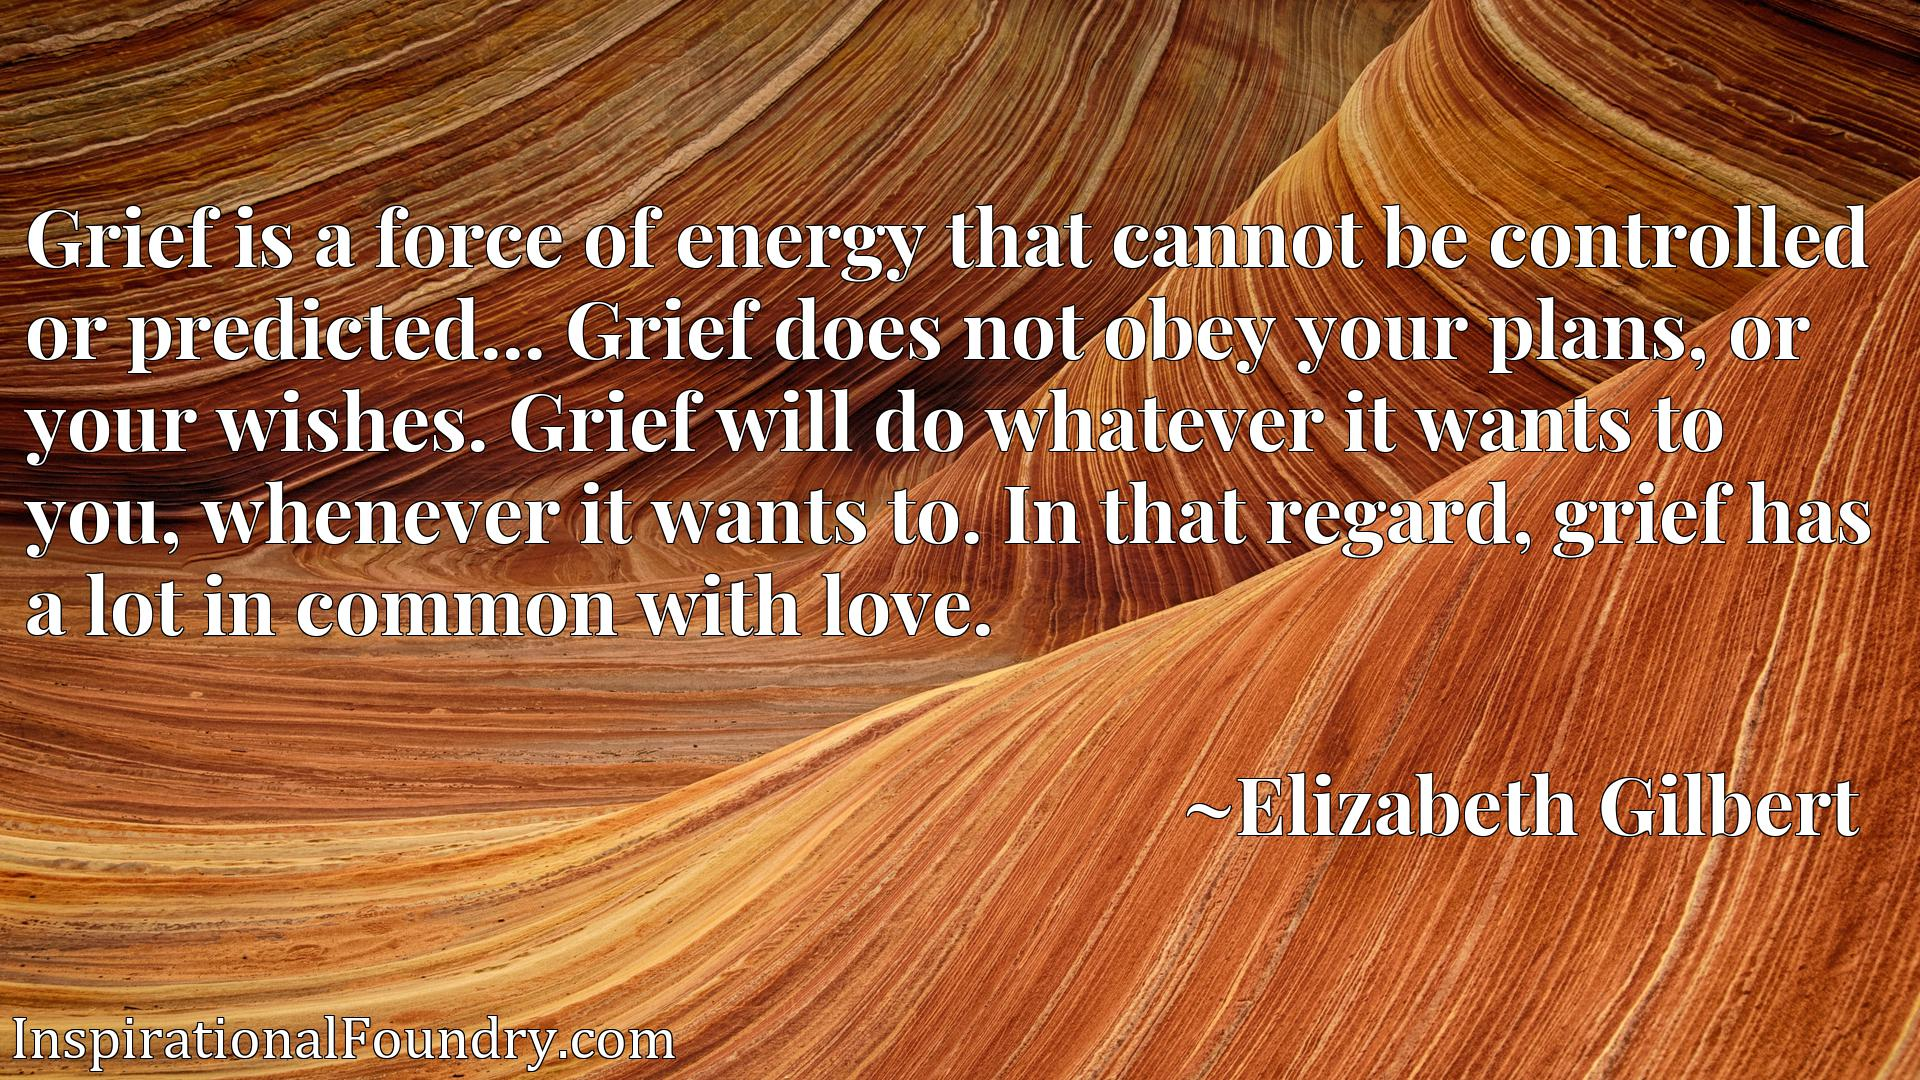 Grief is a force of energy that cannot be controlled or predicted... Grief does not obey your plans, or your wishes. Grief will do whatever it wants to you, whenever it wants to. In that regard, grief has a lot in common with love.